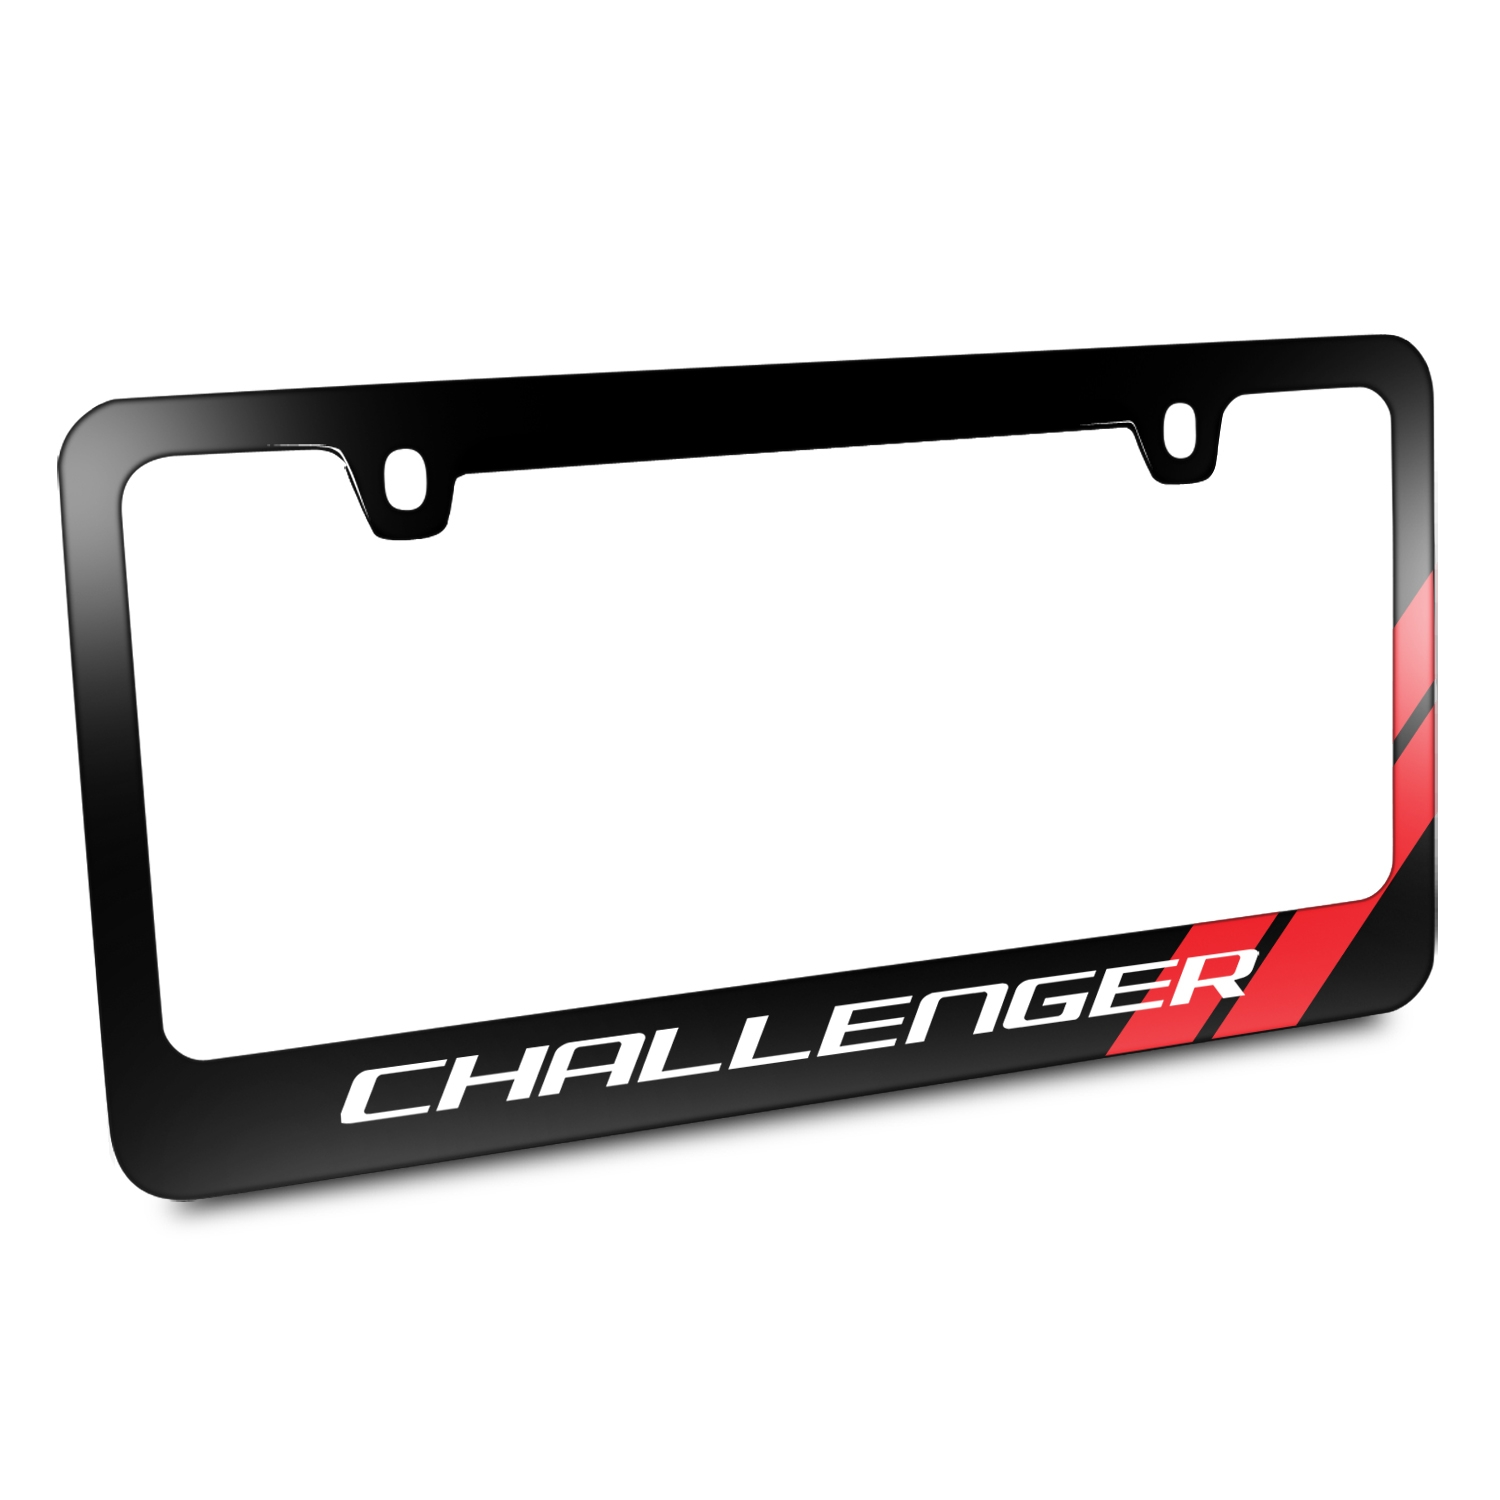 Dodge Challenger Red Stripe Black Metal License Plate